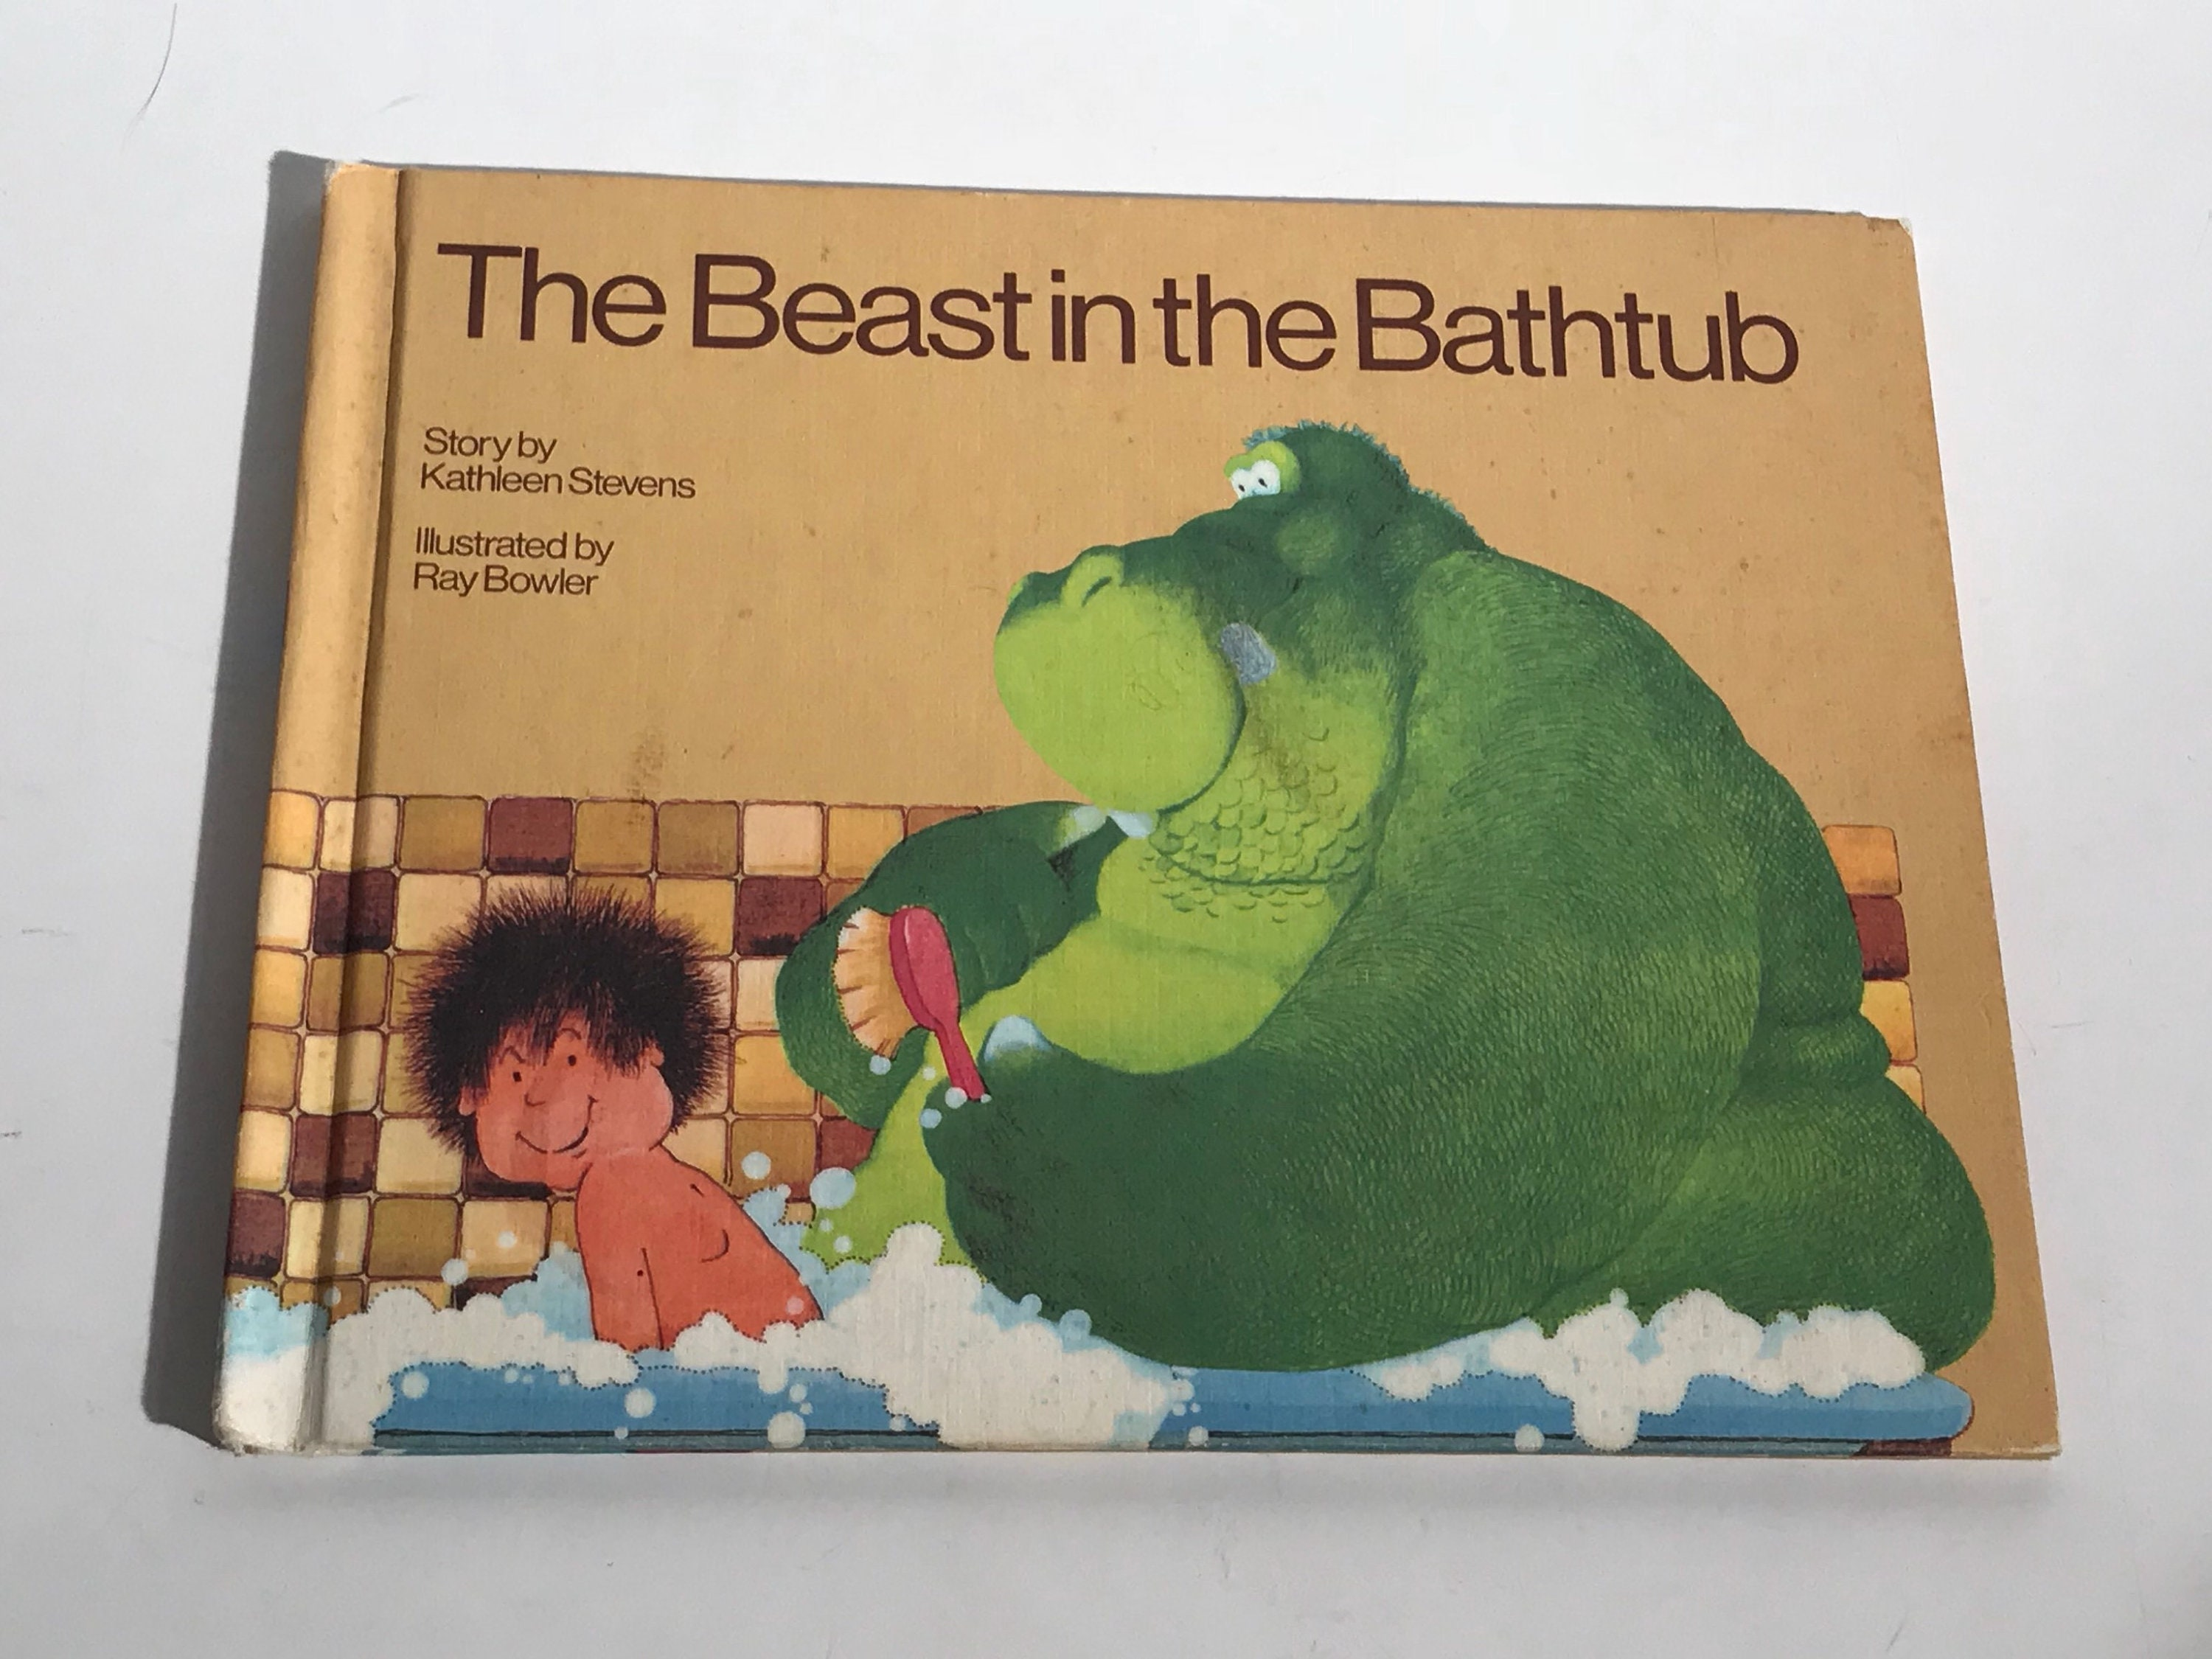 1983 the beast in the bathtub by kathleen stevens illustrated